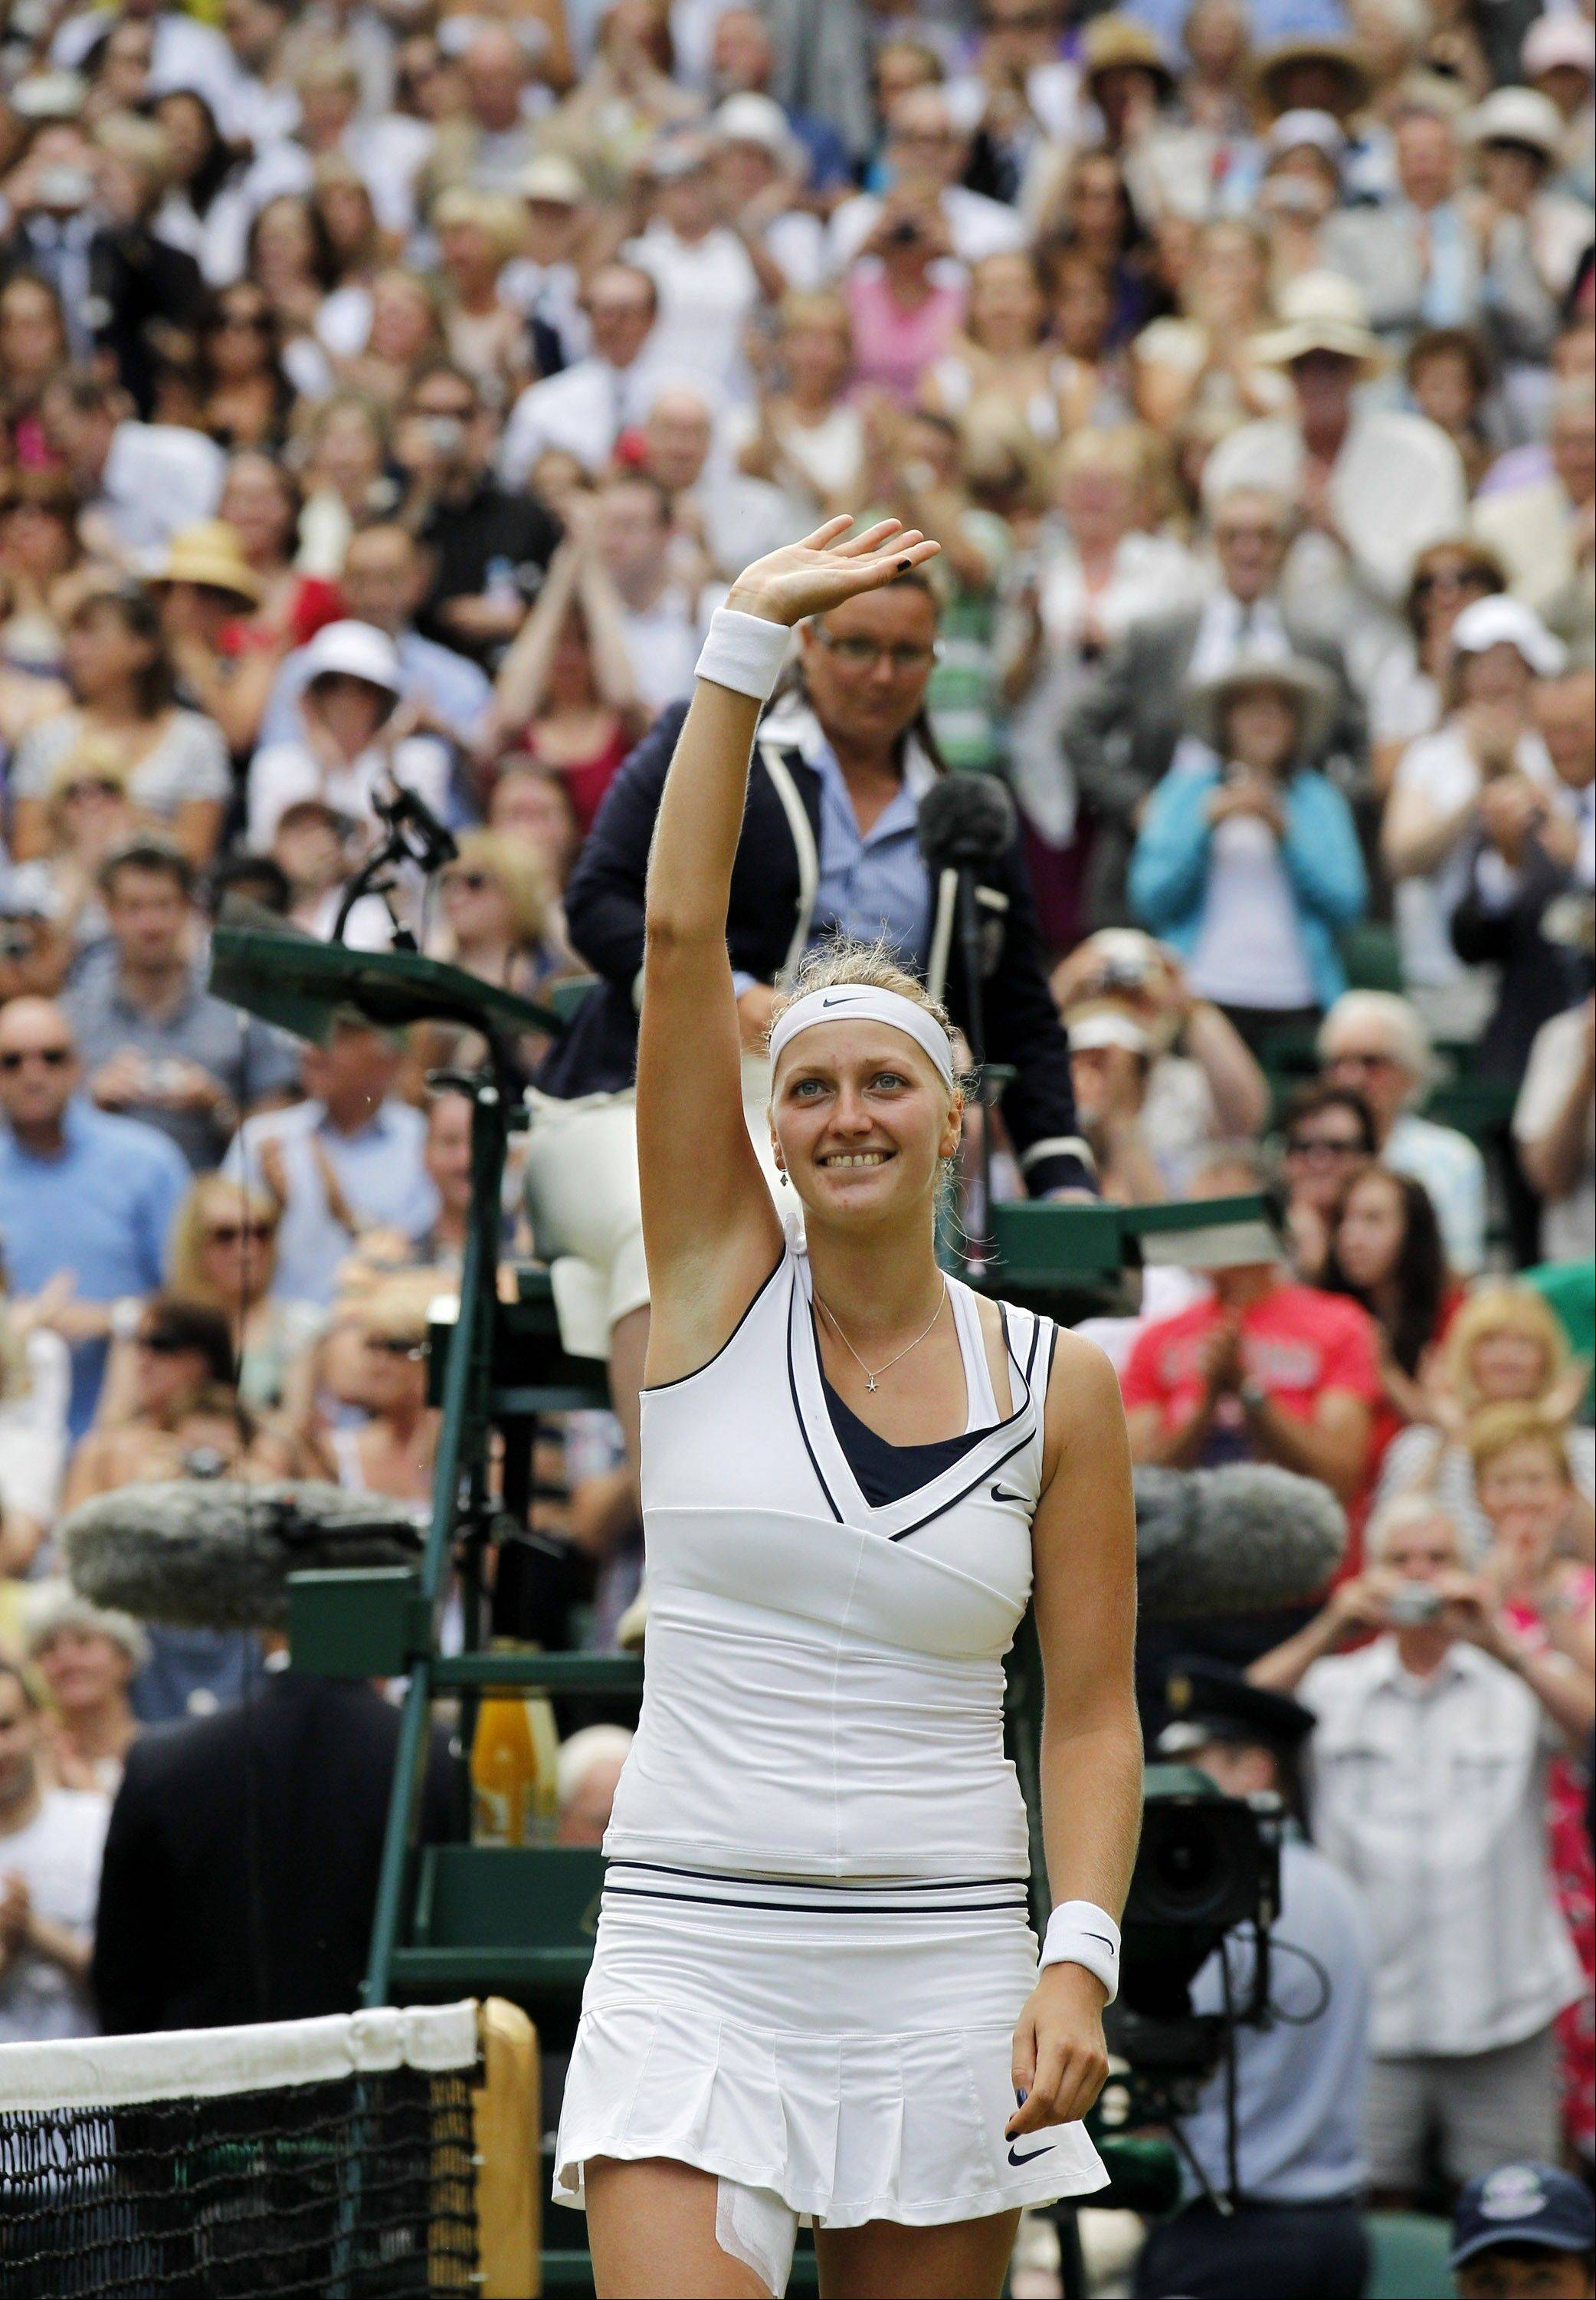 Petra Kvitova of the Czech Republic celebrates defeating Russia's Maria Sharapova in the ladies' singles final at the All England Lawn Tennis Championships at Wimbledon, Saturday, July 2, 2011. (AP Photo/Anja Niedringhaus)